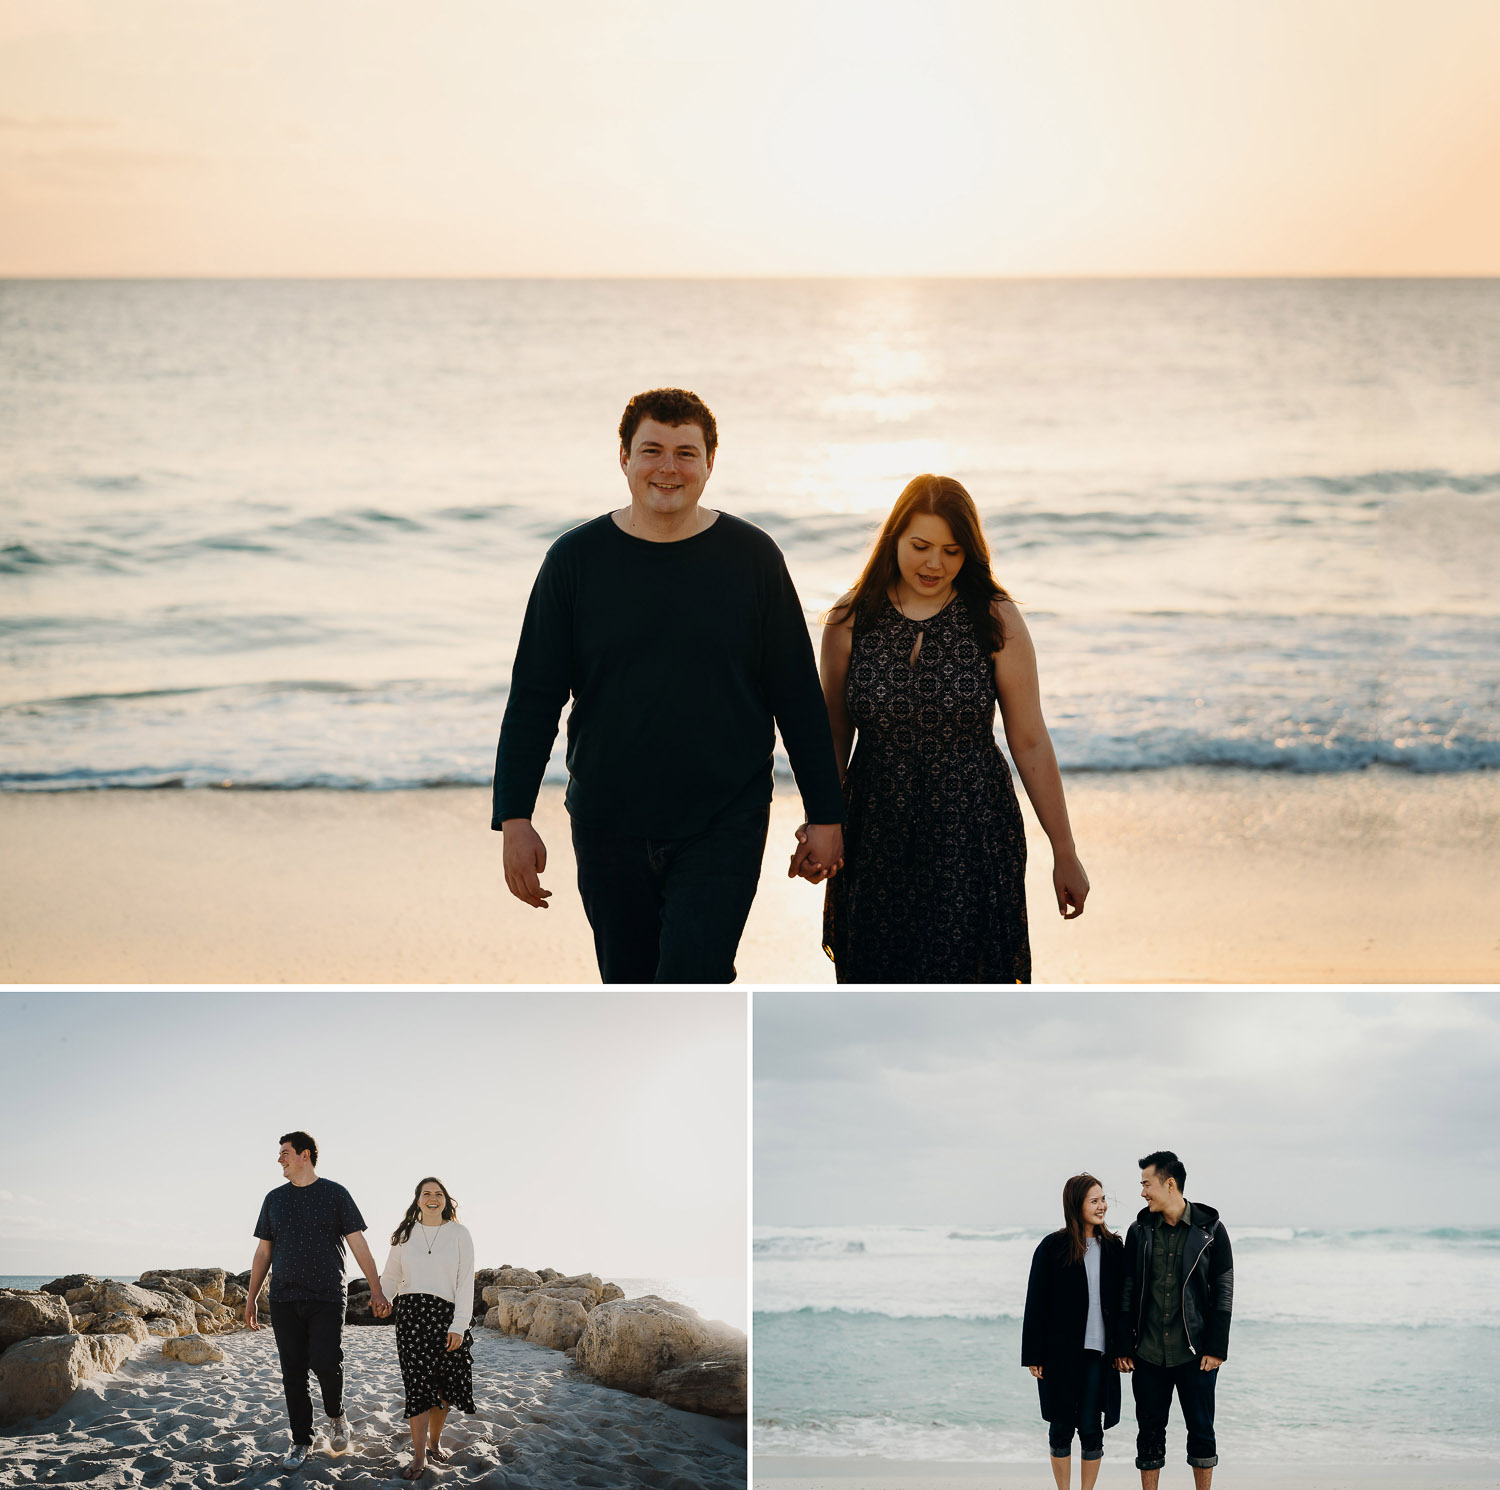 Casual prewed and engagement shoot on beach, photoshoot during sunset on beach, couple photoshoot on beach, couple holding hands on beach during sunset